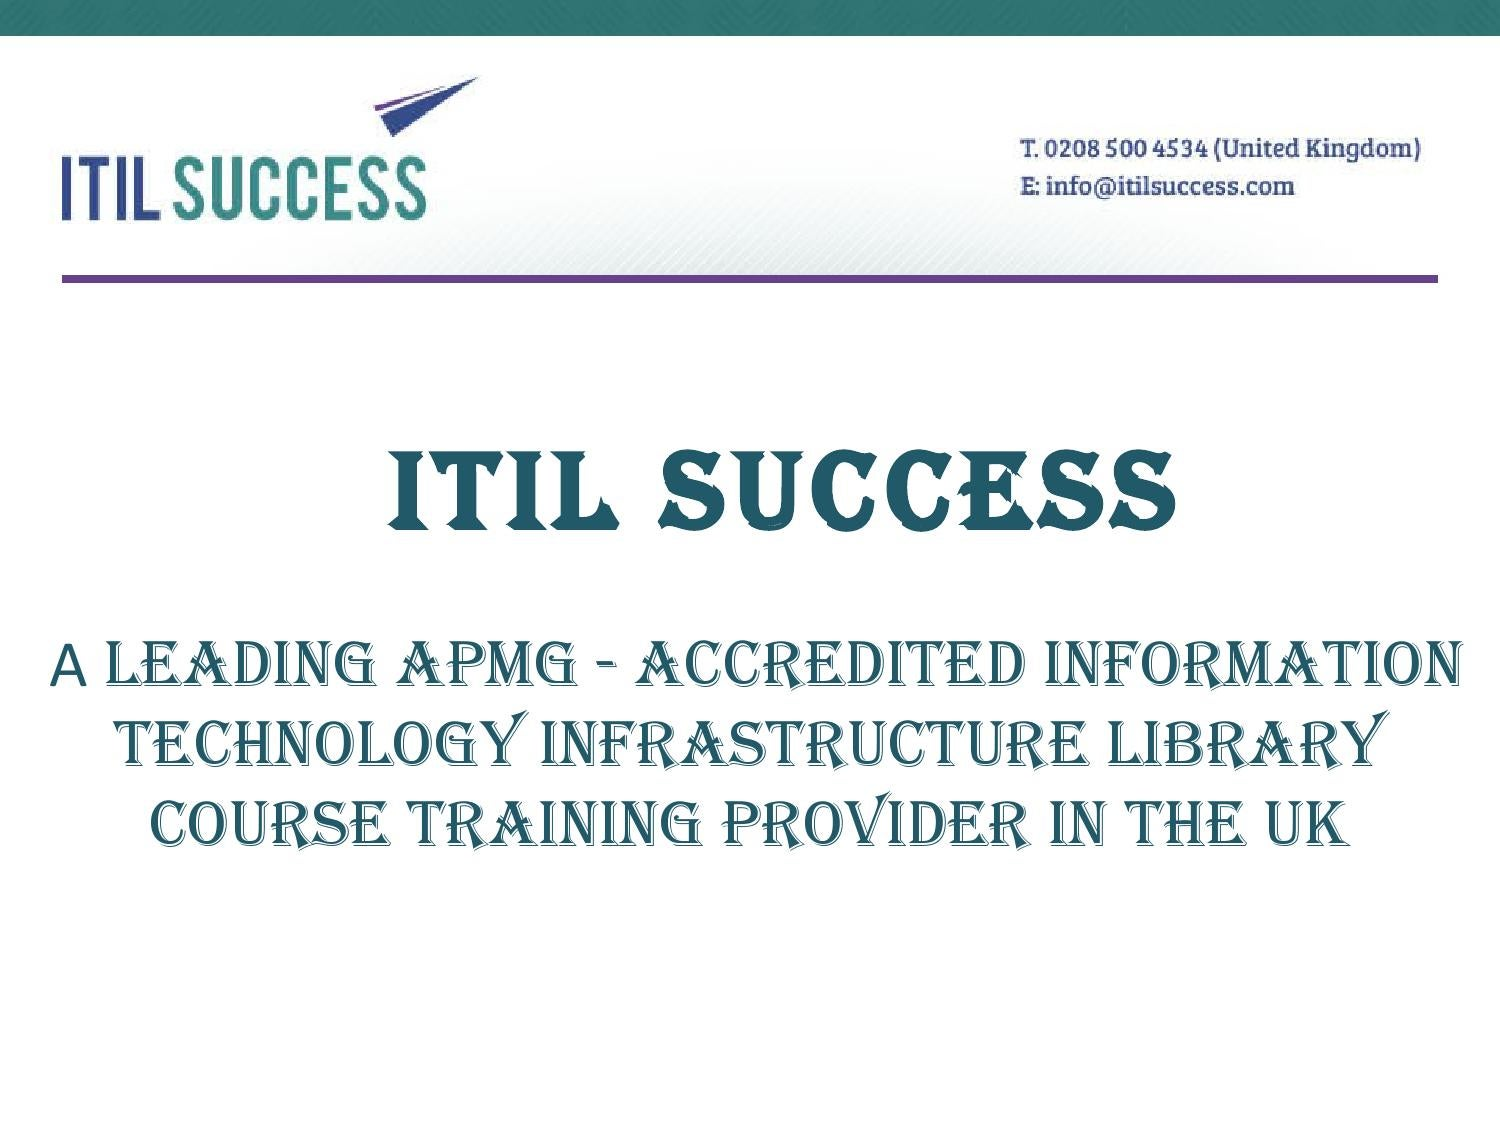 Itil certification go level by level by itil success issuu 1betcityfo Images